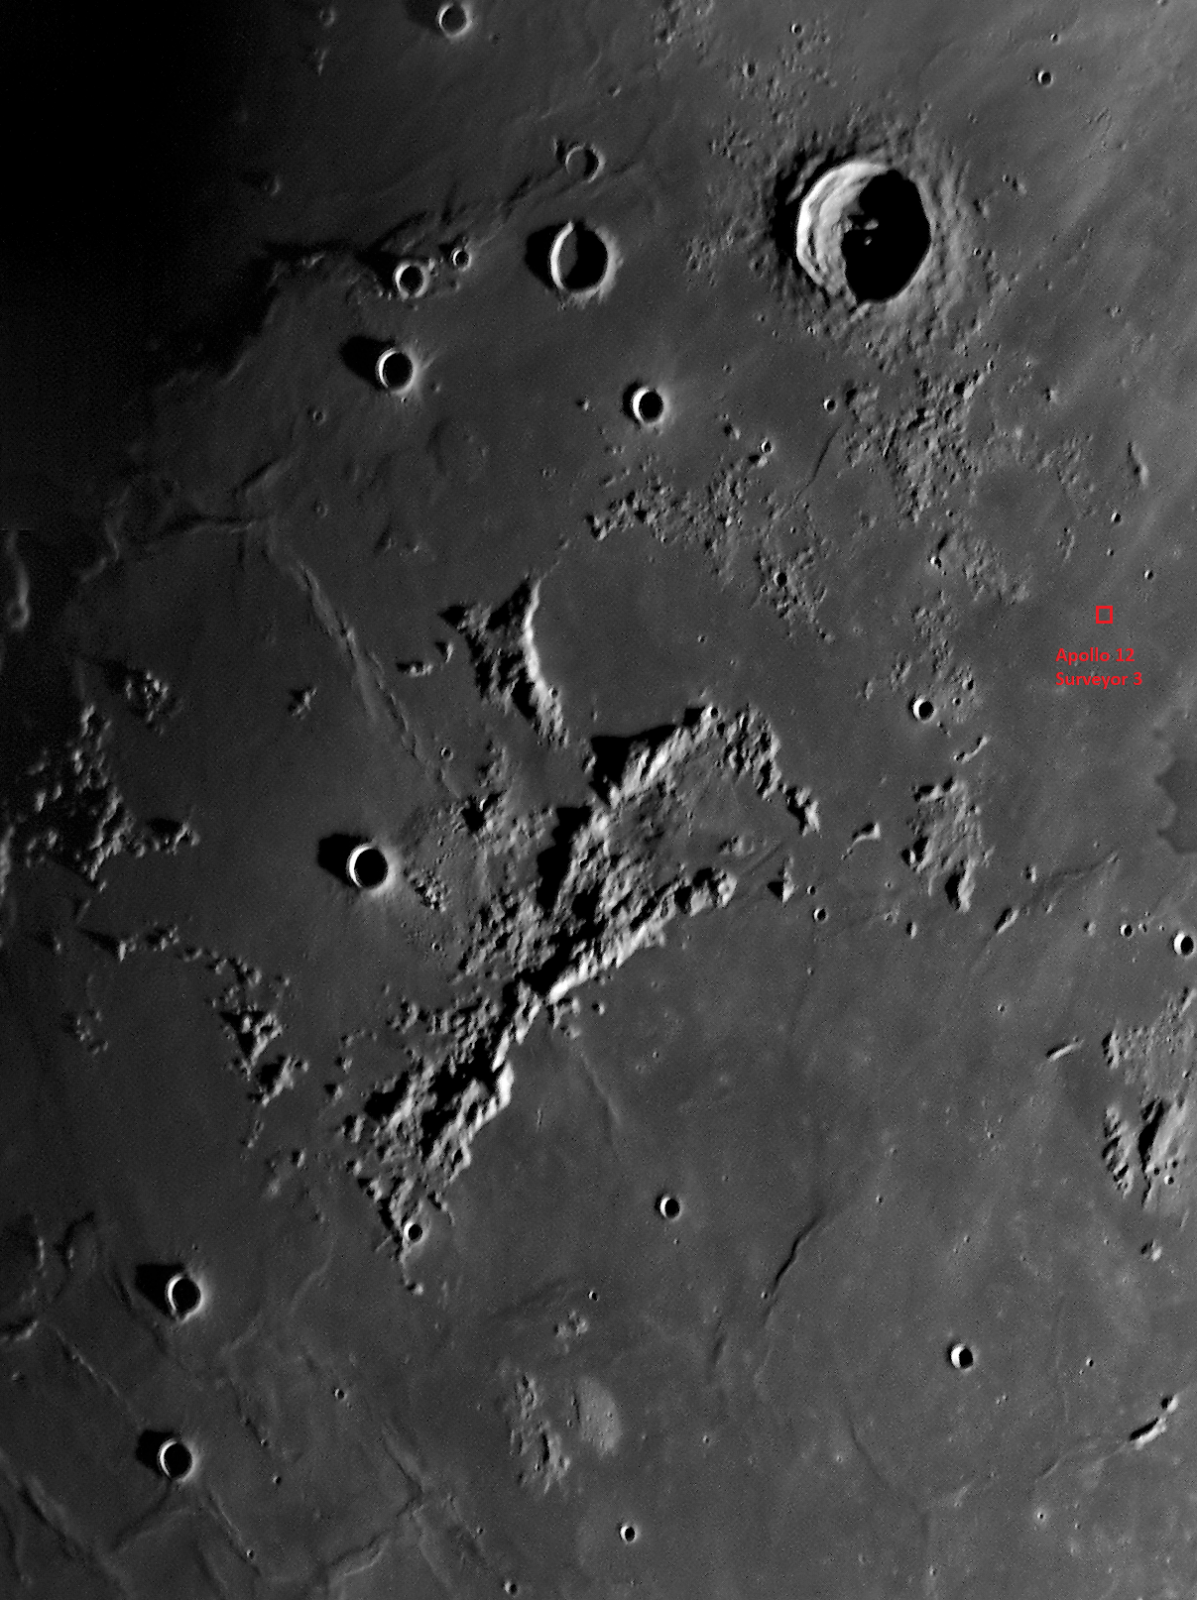 Apollo 12 Moon_20200105_192549_g4_ap2245 R6 gl 3x100 3x50 0,090 pop crop.png